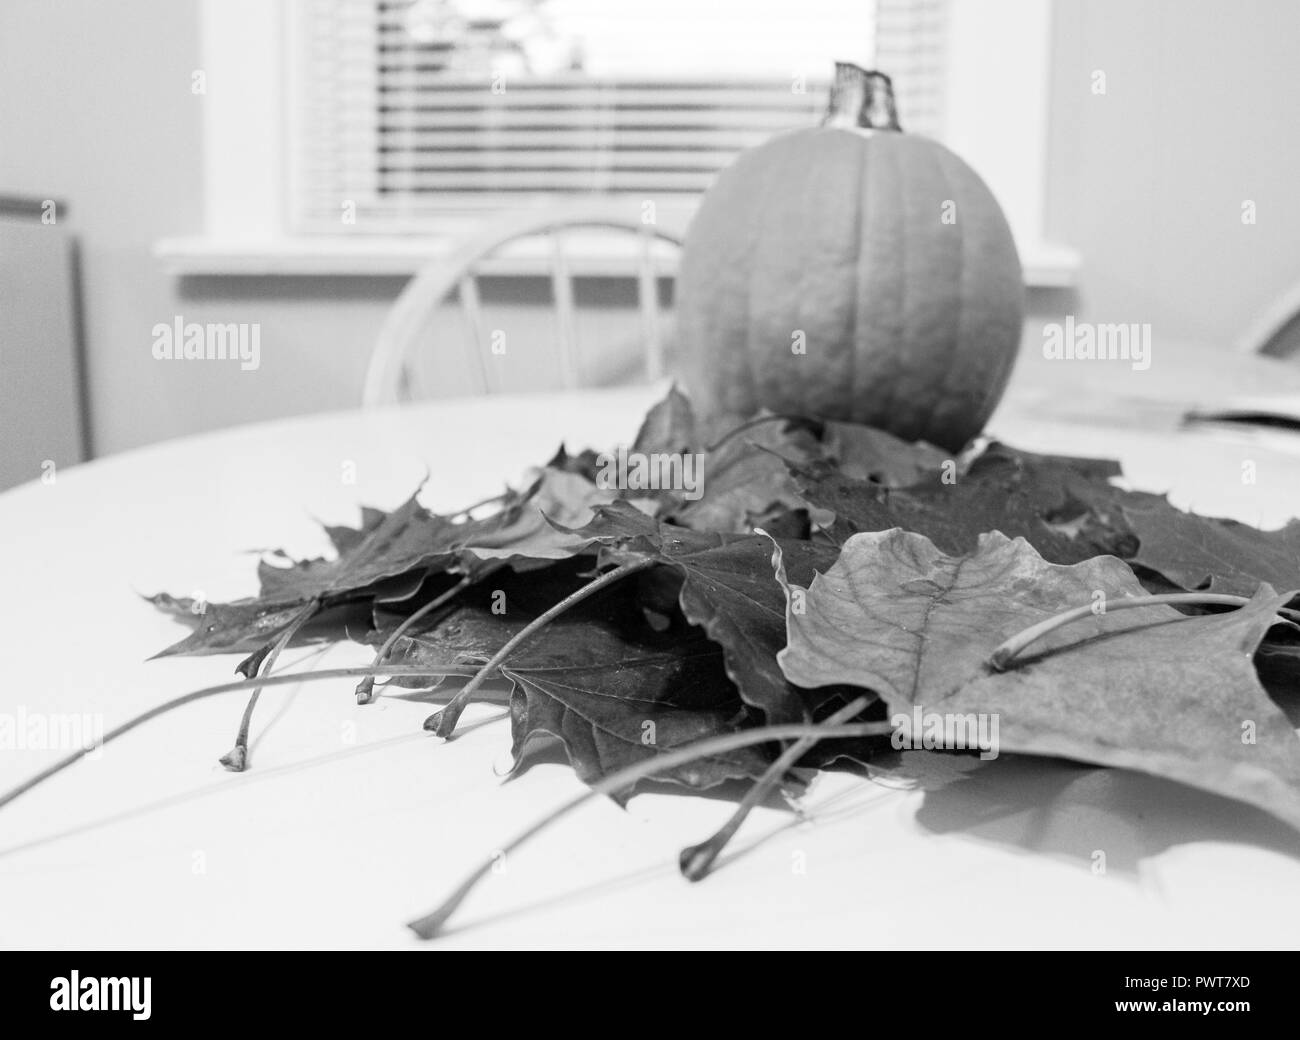 black and white photo of fall leaves and a pie pumpkin on kitchen table - Stock Image